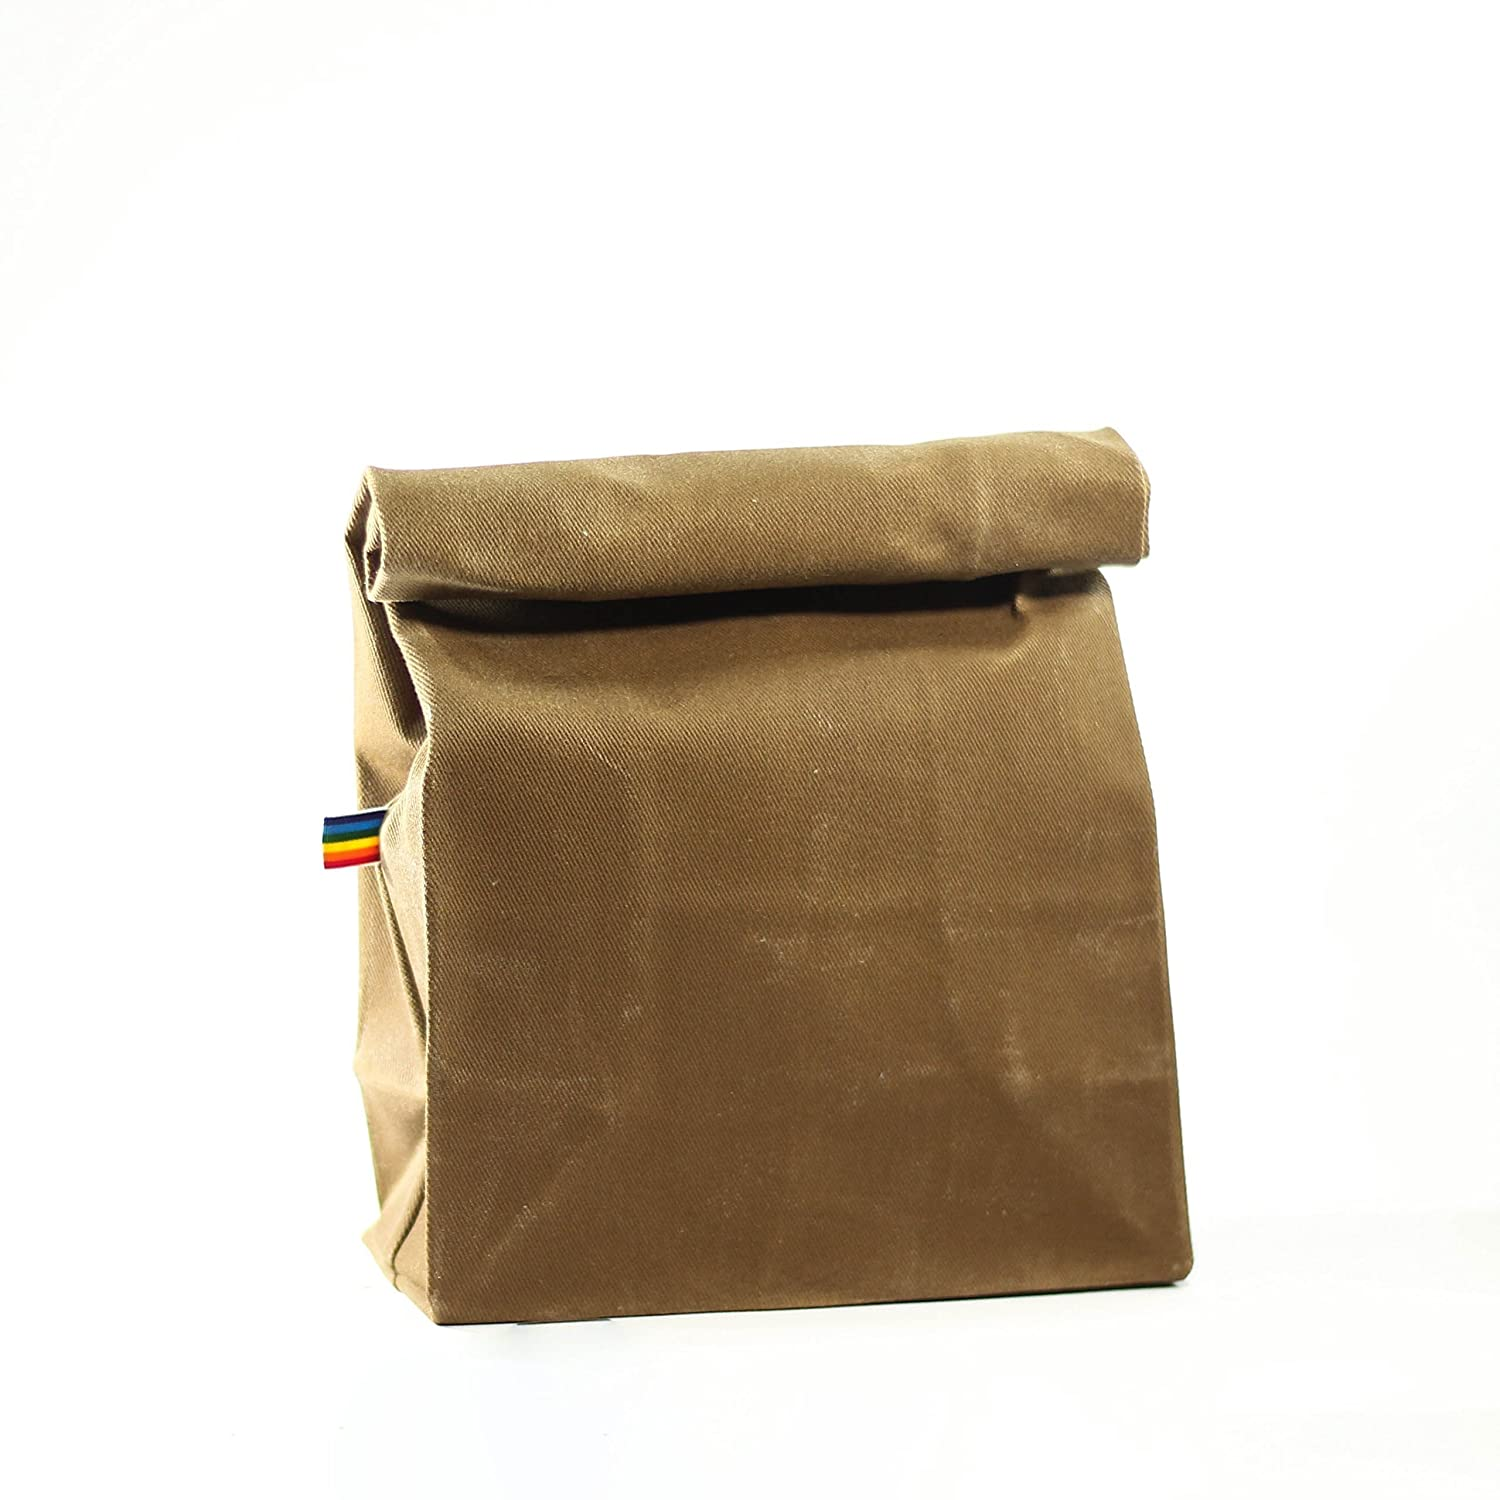 Lunch Bag - Light Brown Waxed Canvas